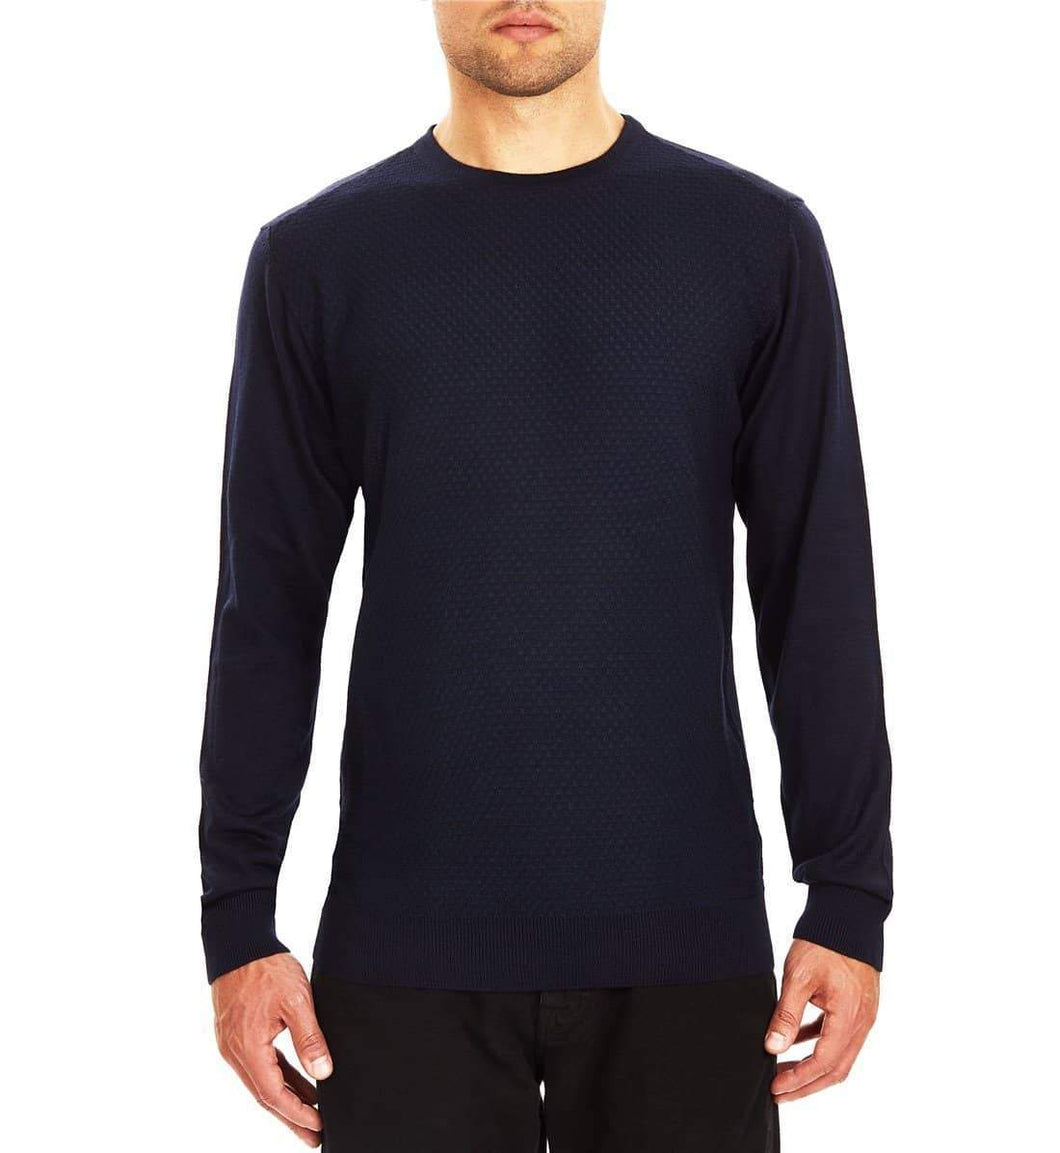 Guide London Jacquard Front Crew Neck Sweater - Navy S - 36